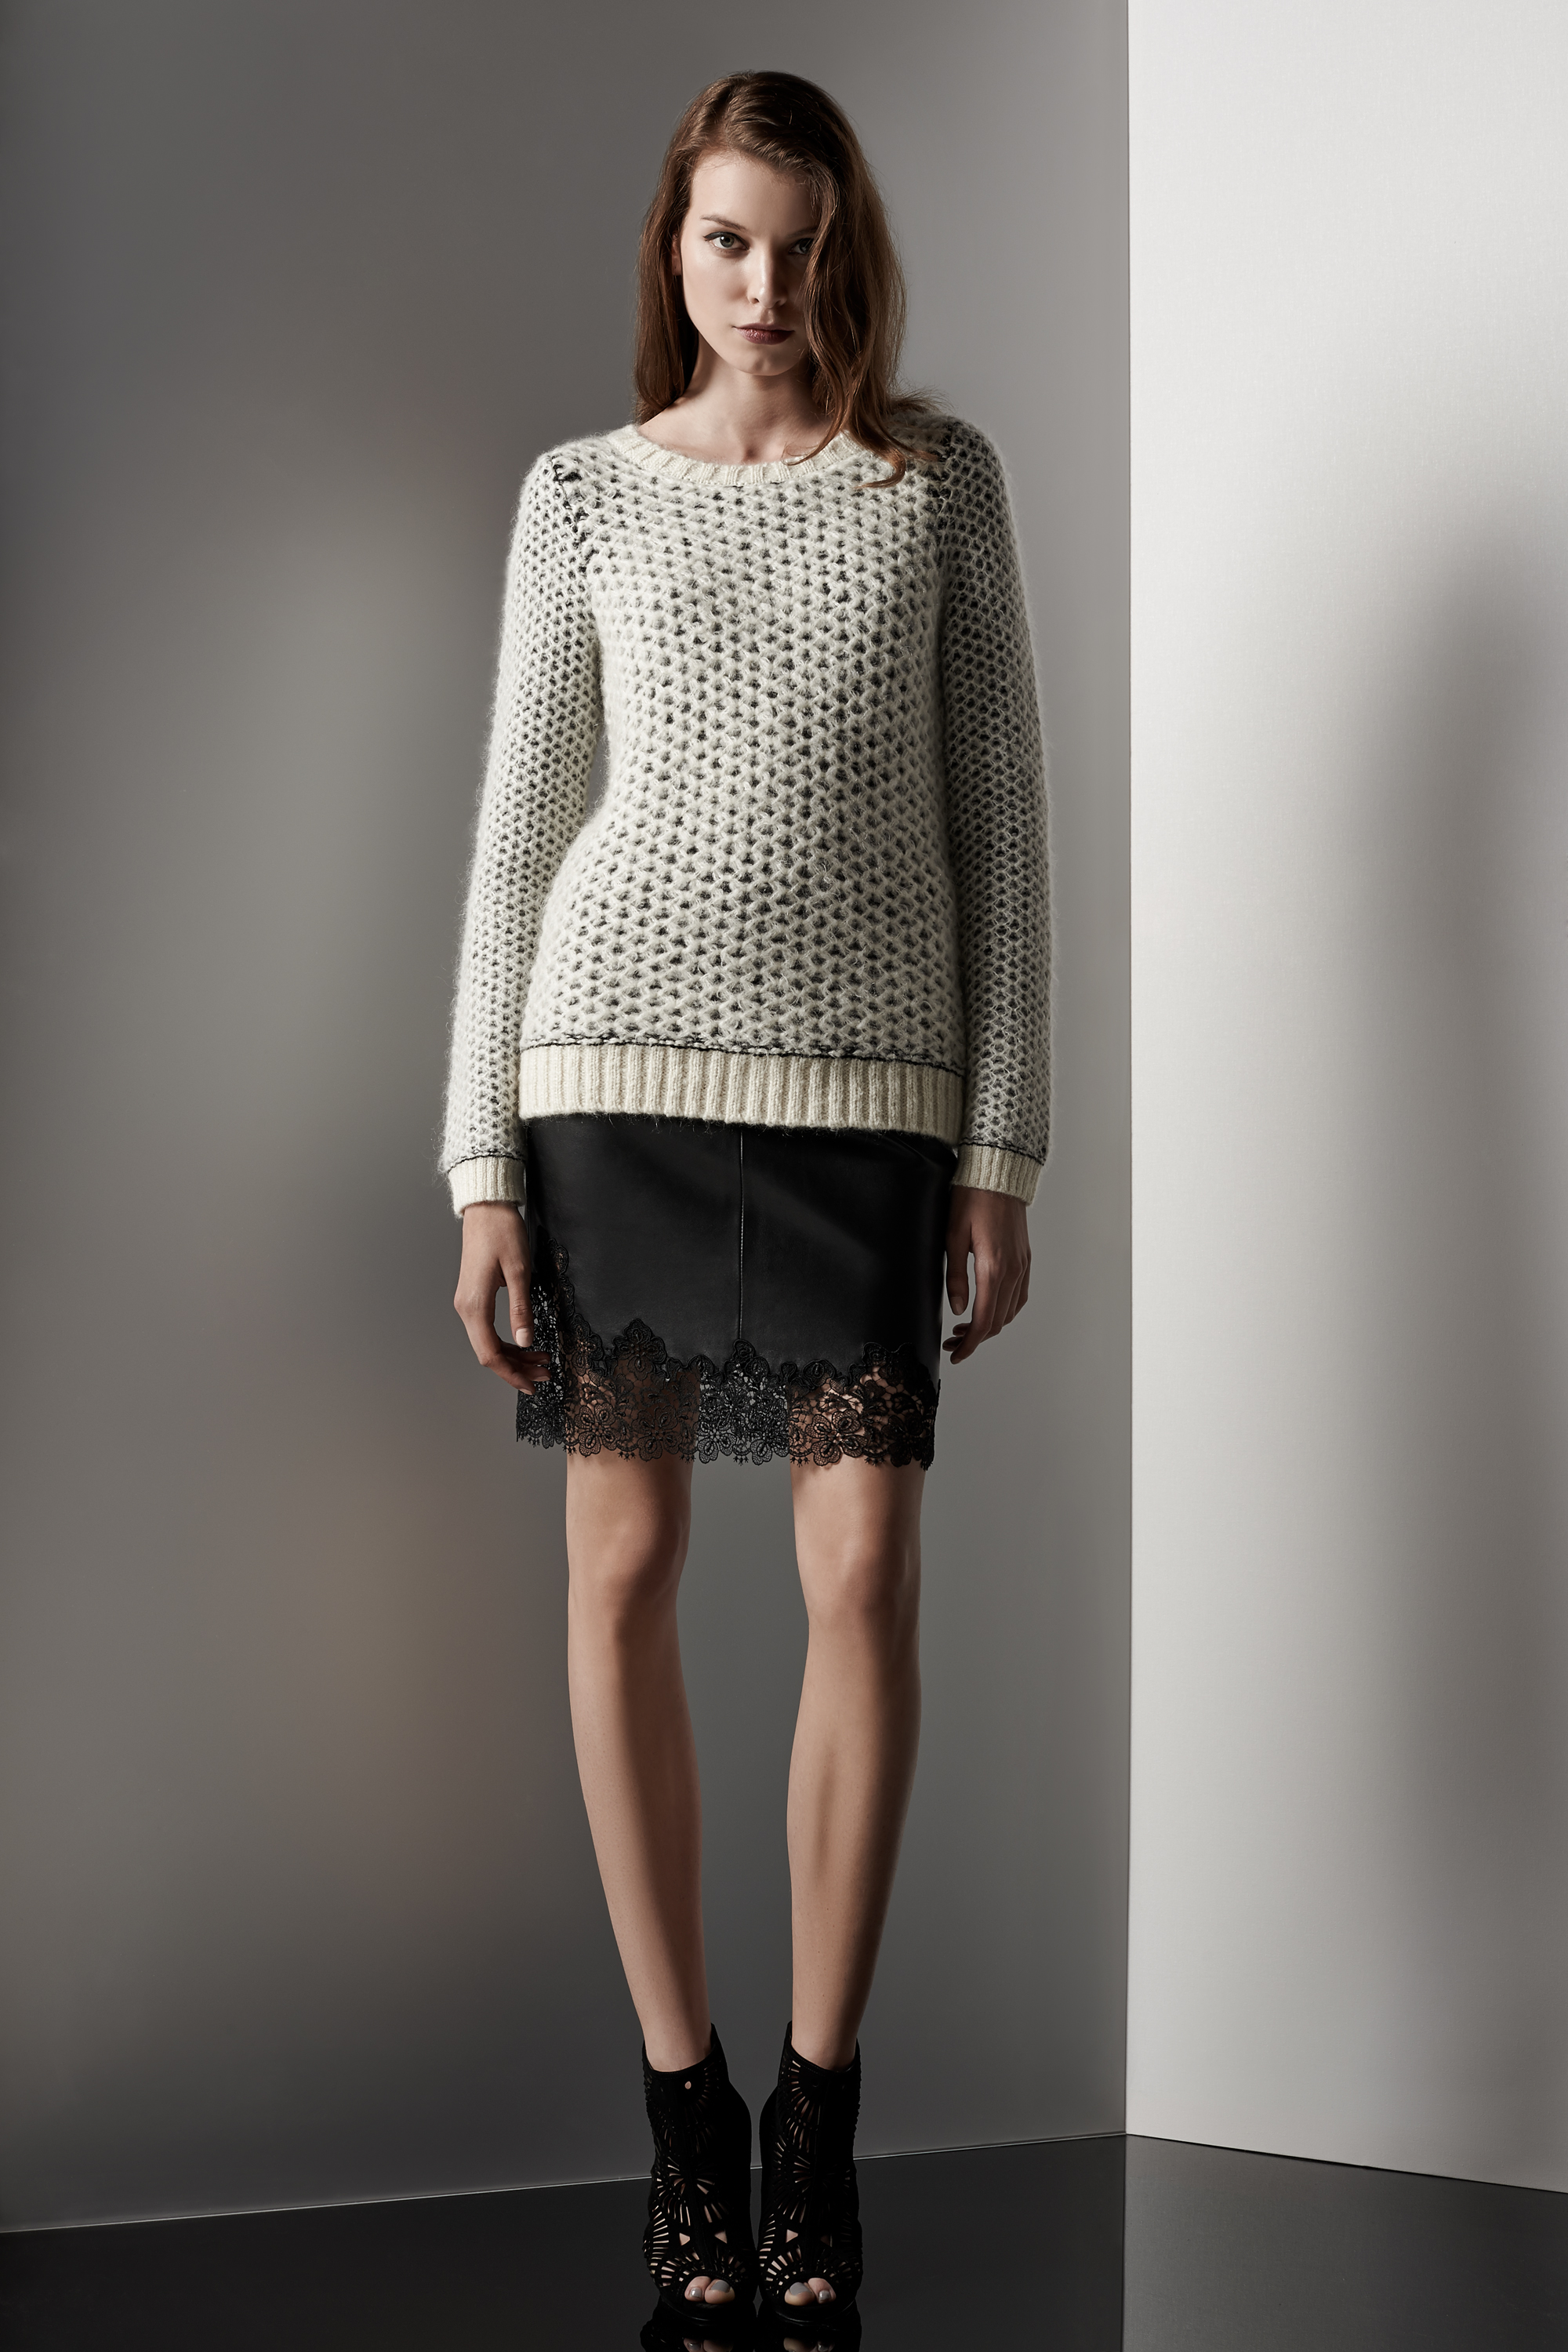 fdf5d424 In this collection, Reiss have opted to use a variety of two-toned  materials like leather and lace. I love this leather mini skirt with the  lace hemline.